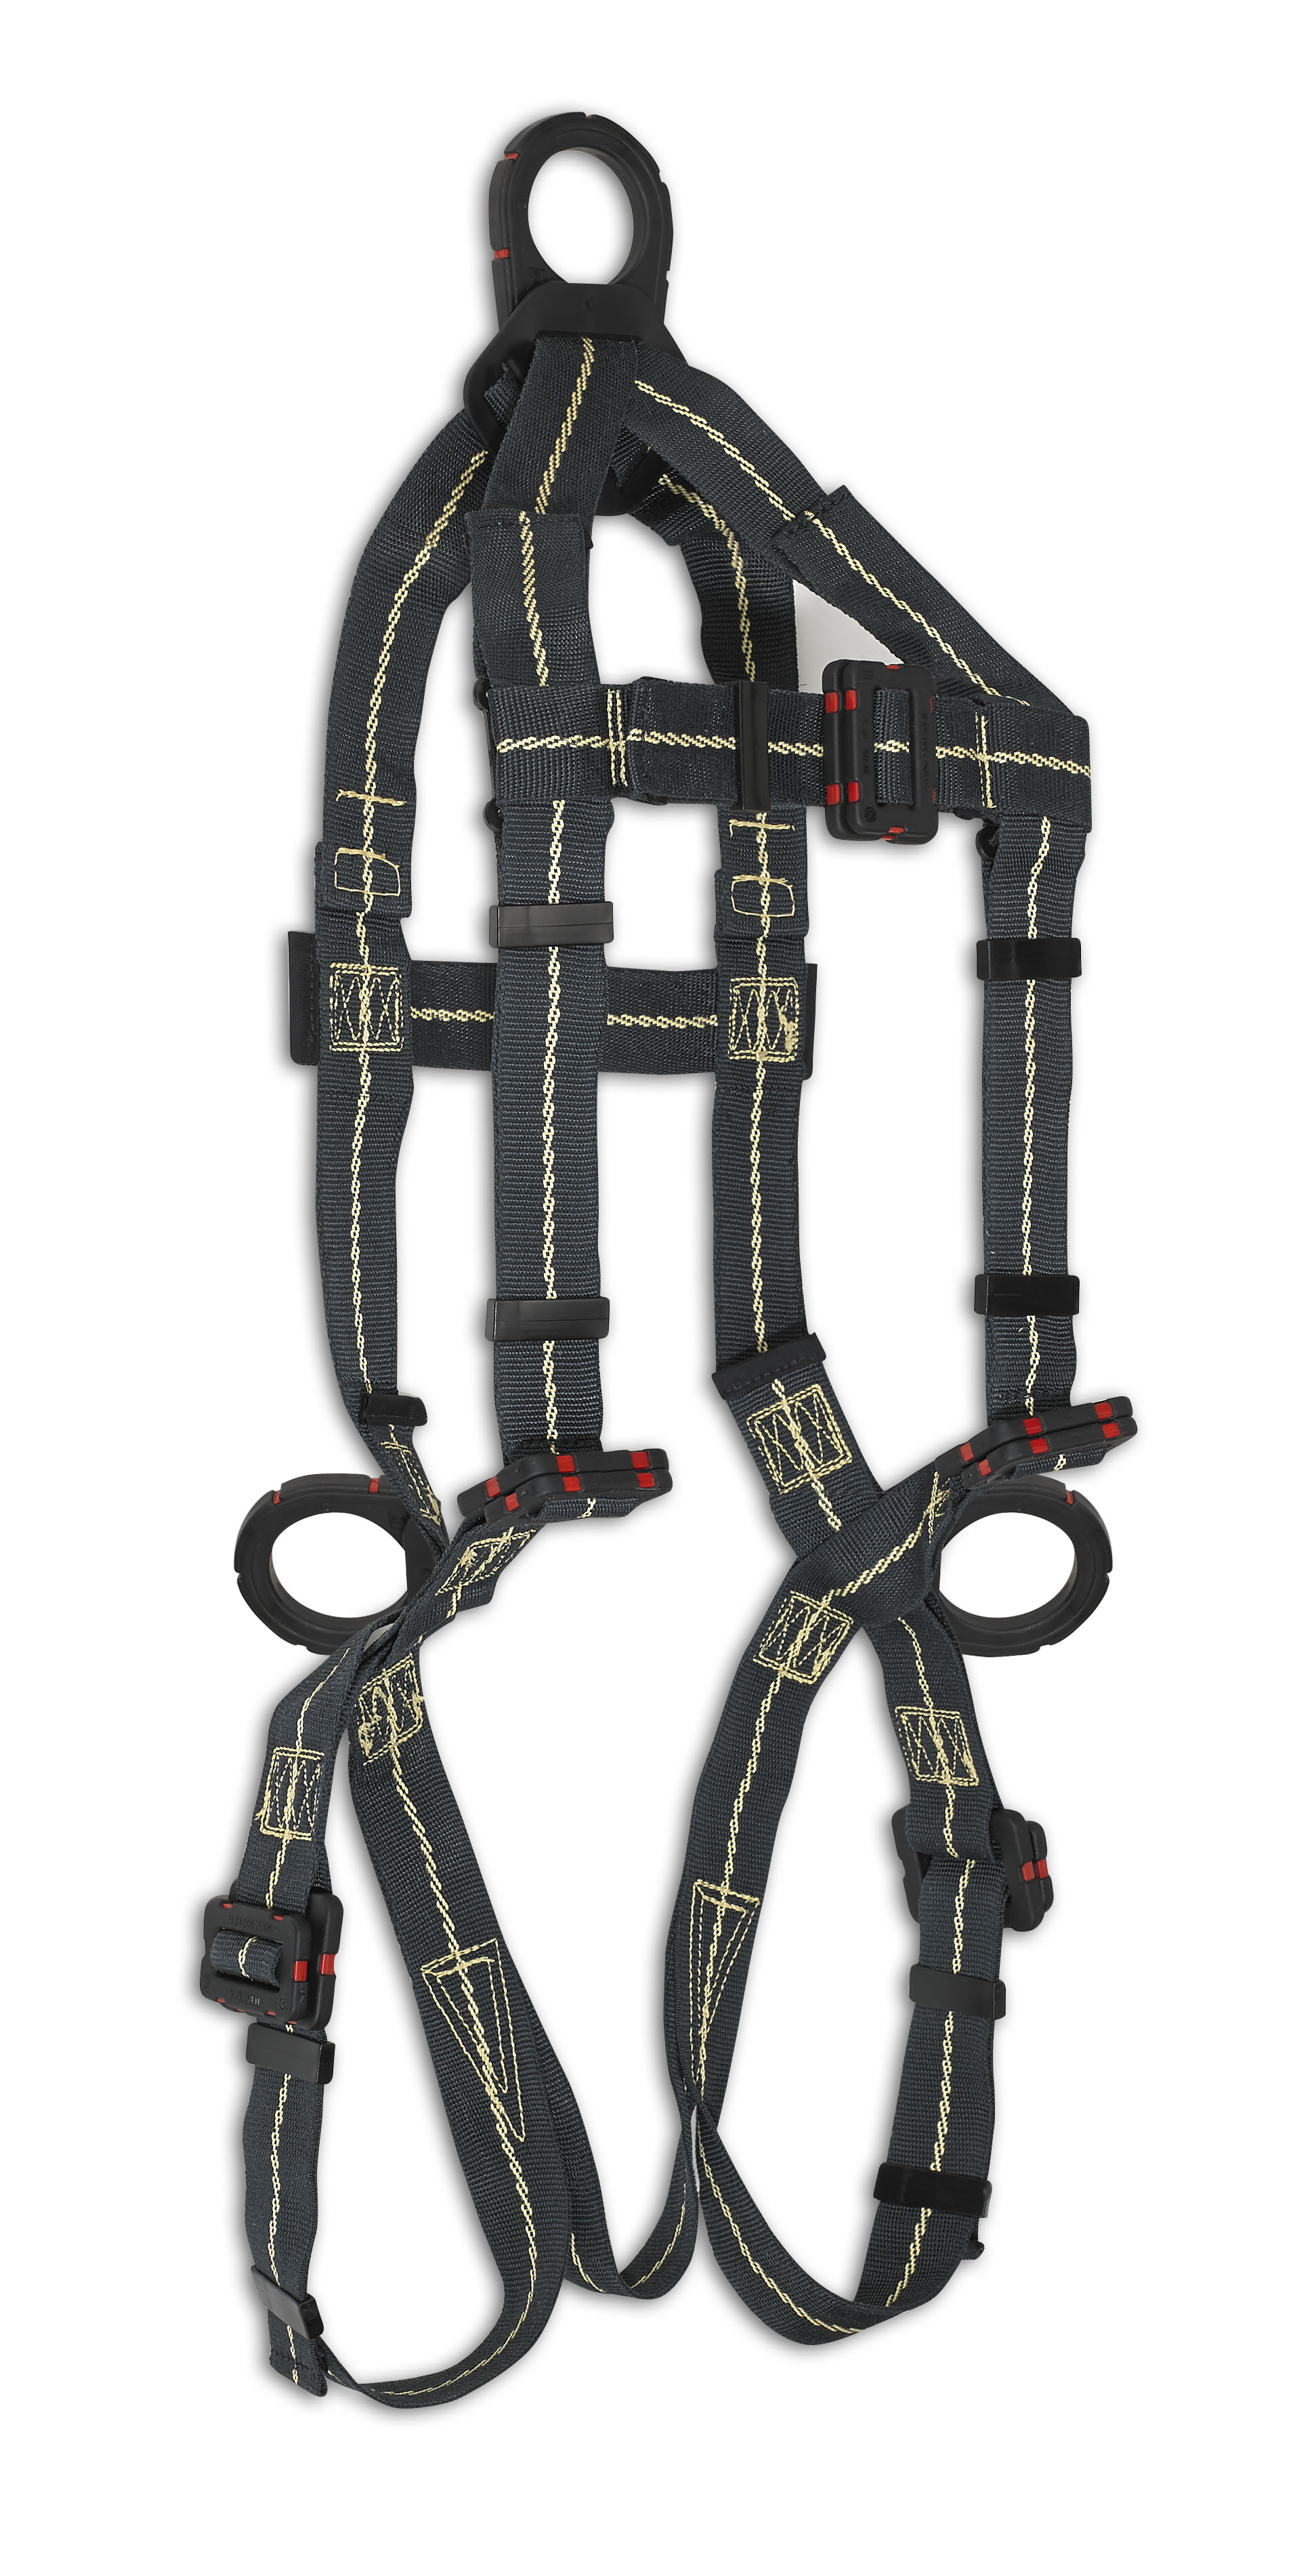 Fall Arrest Harness Buying Guide Height Savvy